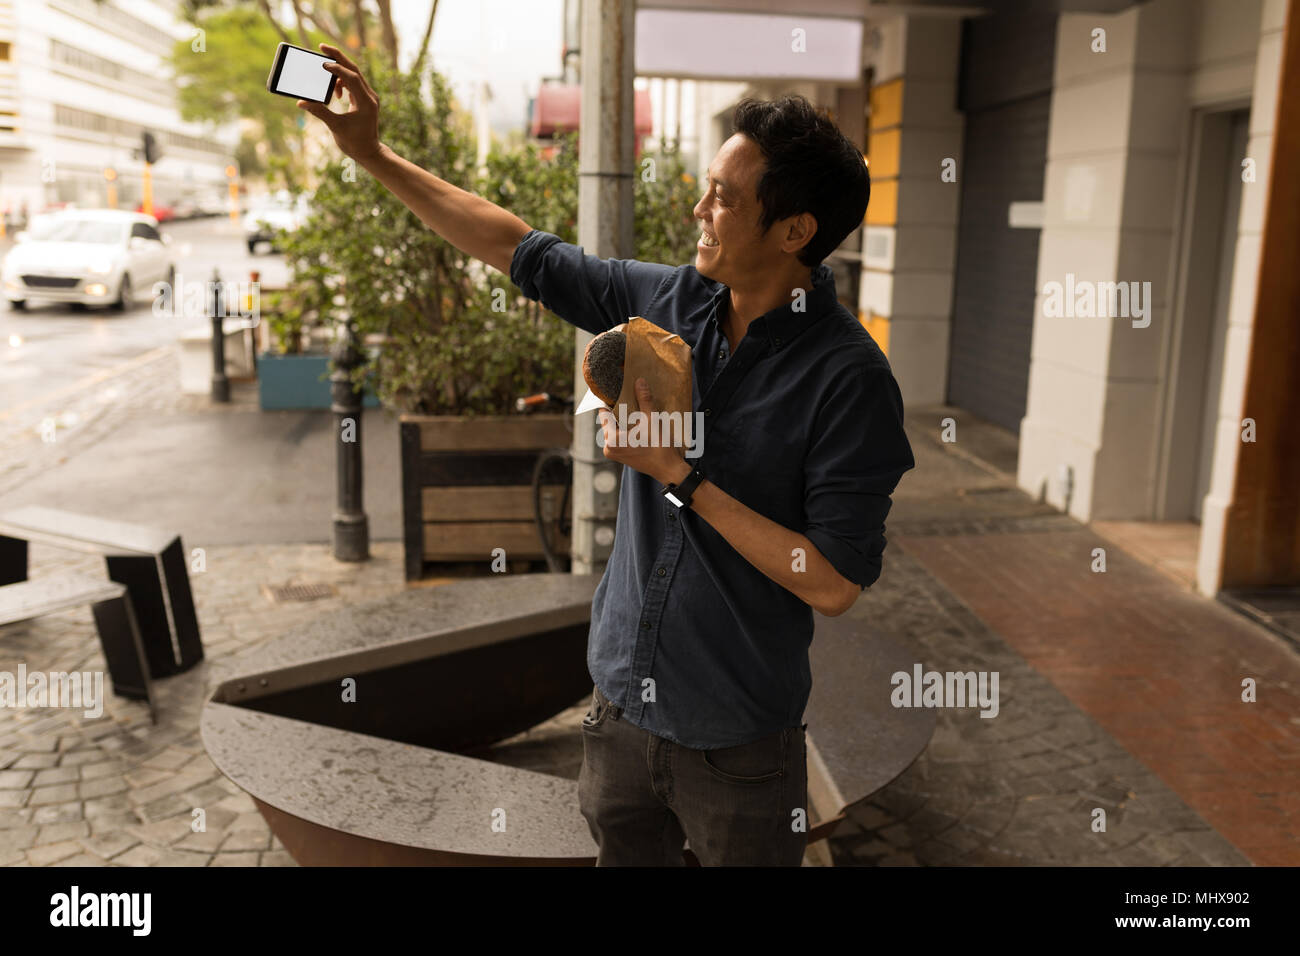 Businessman taking selfie with mobile phone - Stock Image